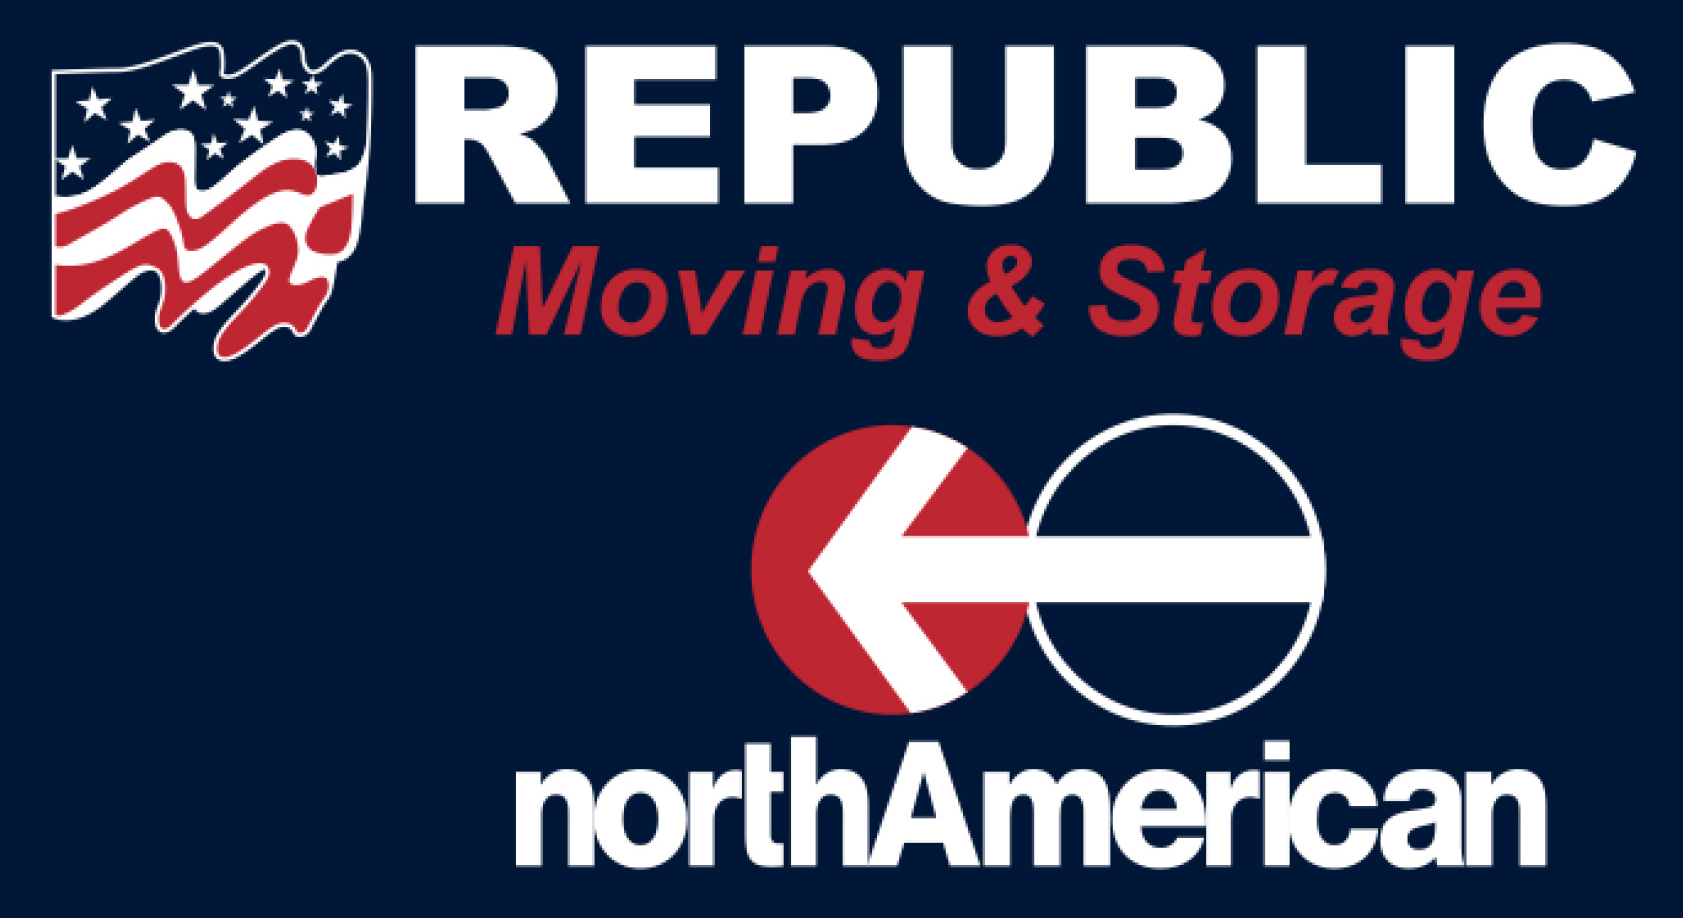 Republic Moving U0026 Storage Has Built An Incredible Reputation In A Short  Time. Headquartered In Chula Vista, CA The Company Was The First West Coast  Mover To ...